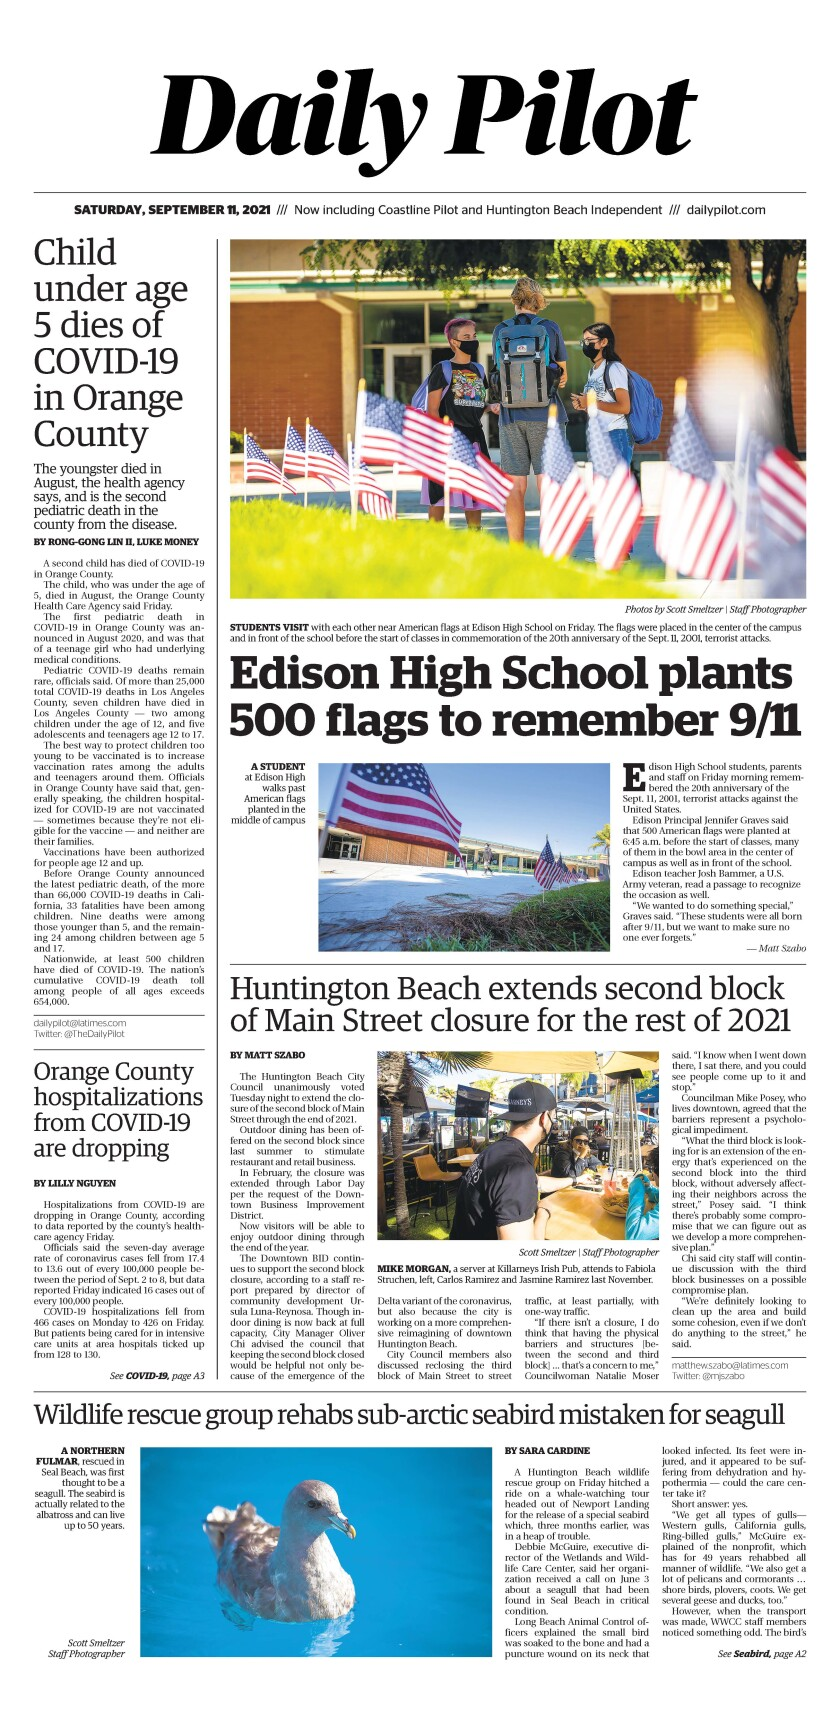 Front page of Daily Pilot e-newspaper for Saturday, Sept. 11, 2021.